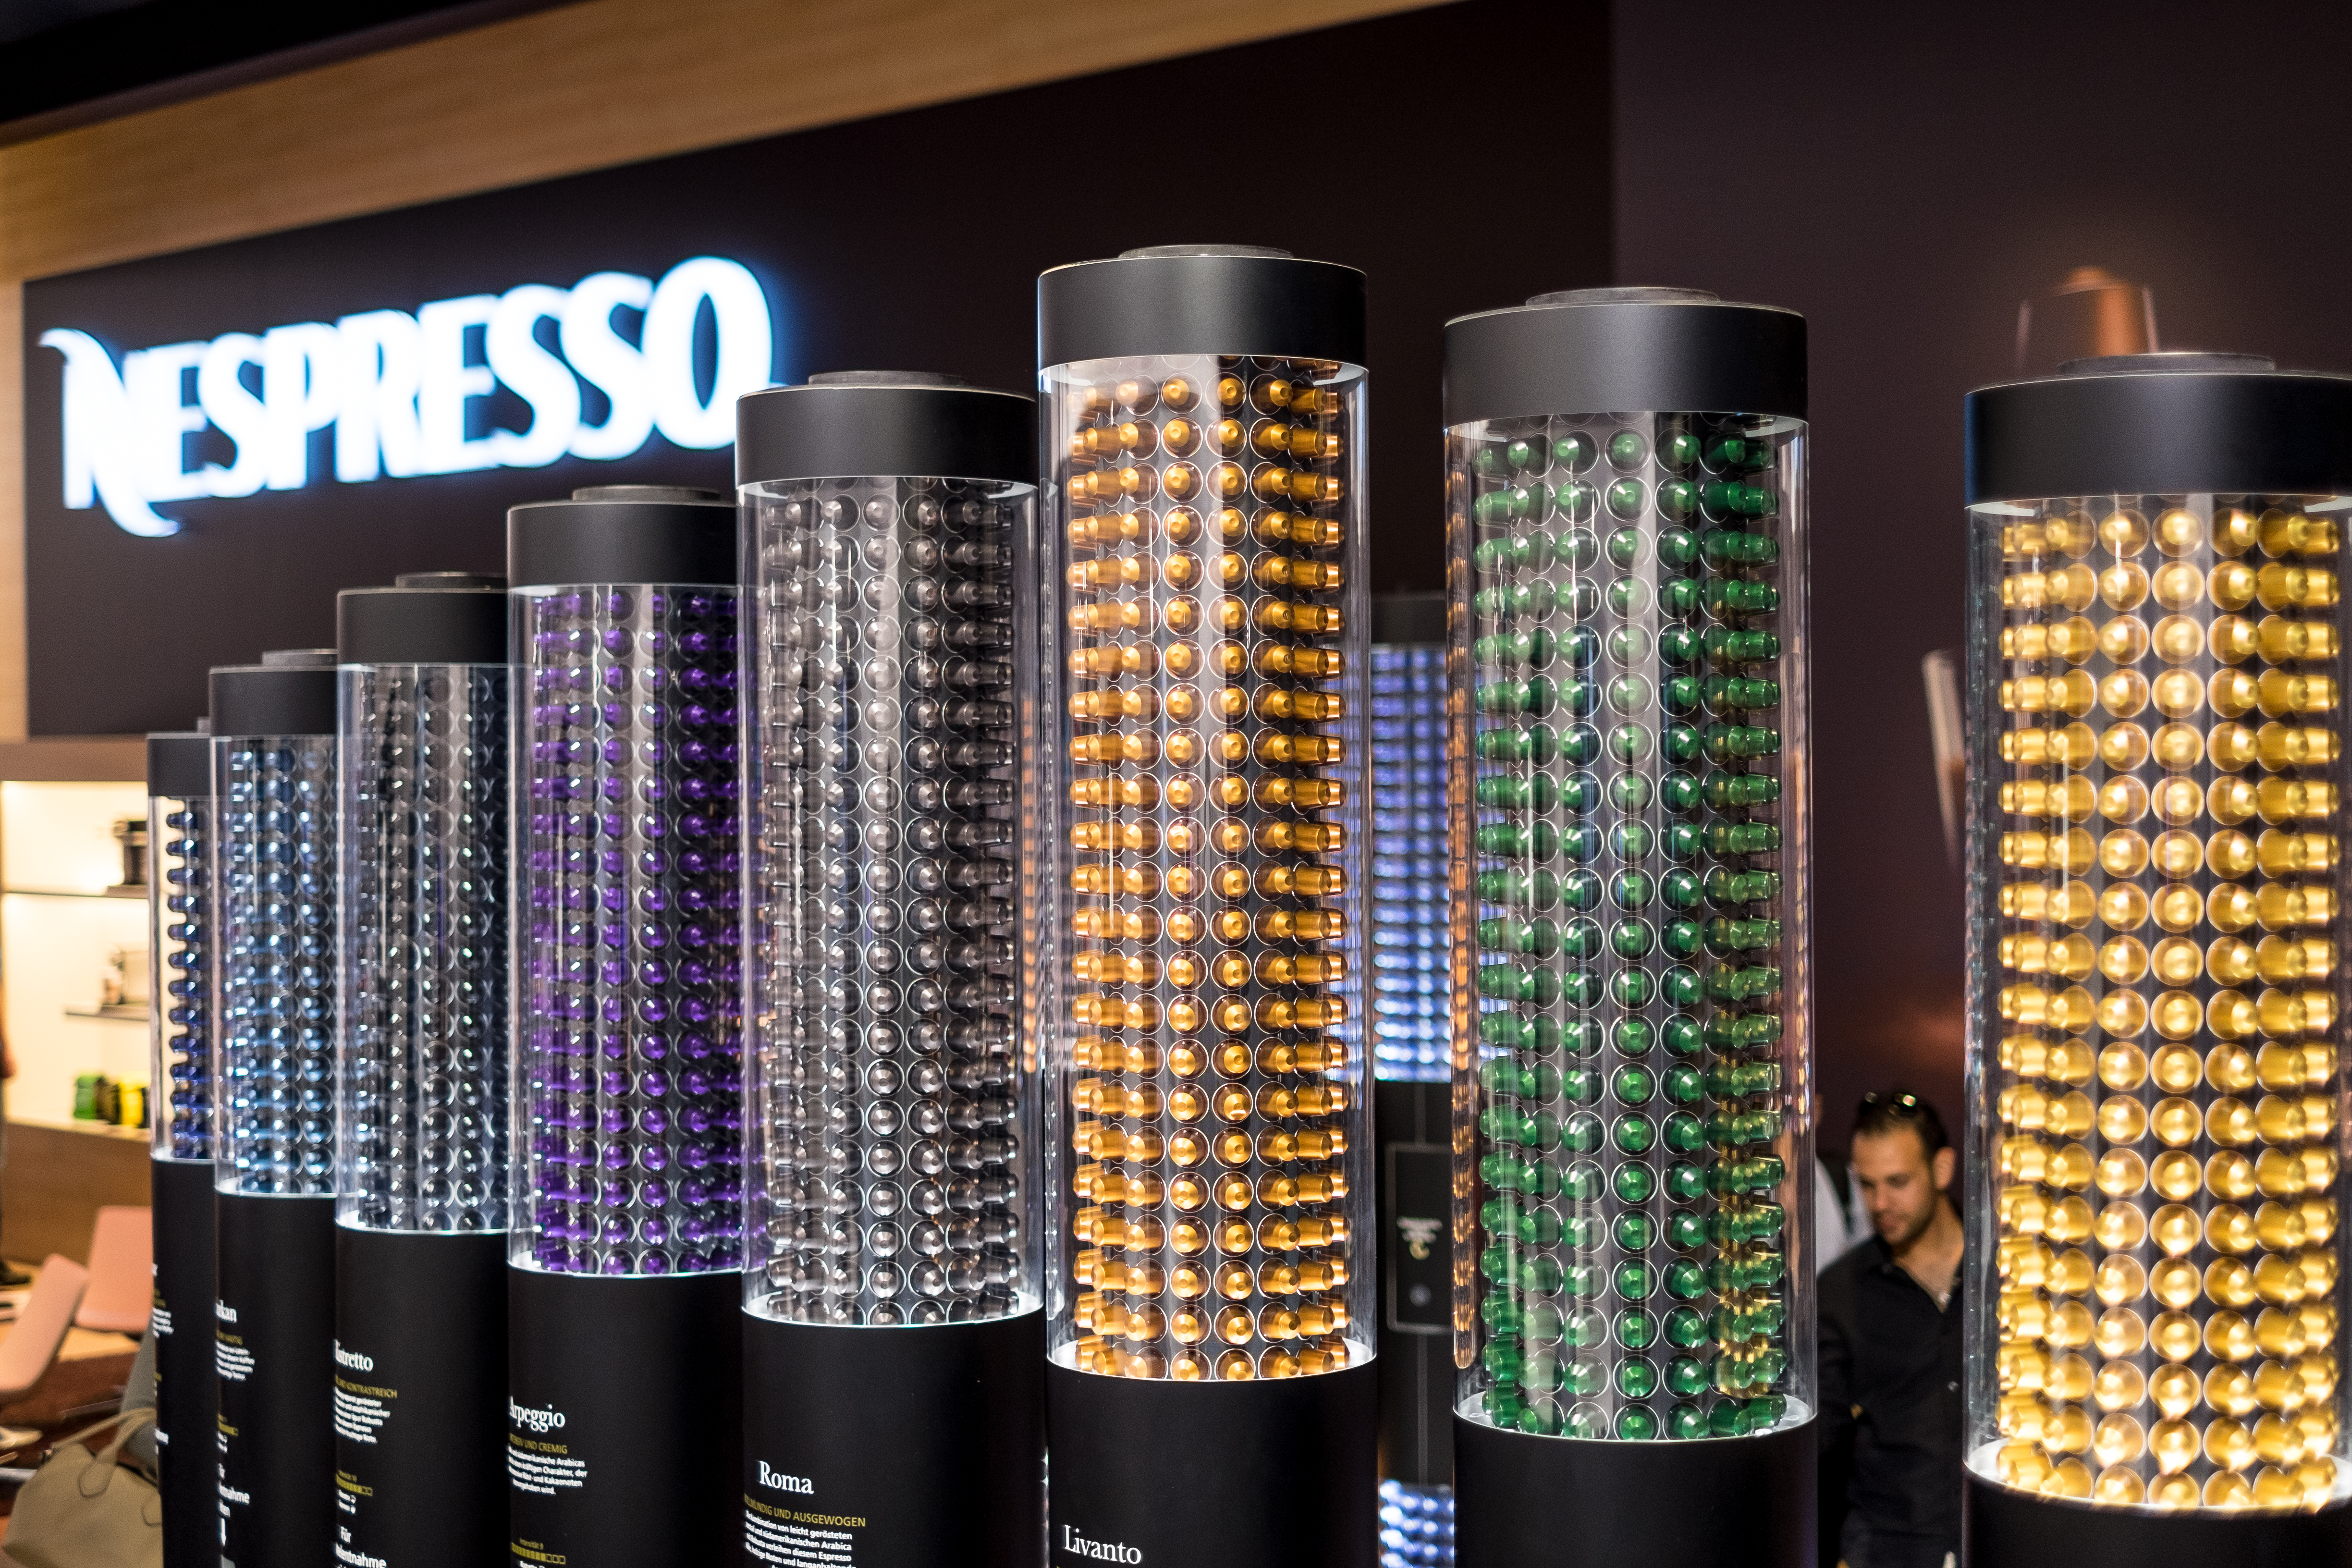 A photograph shows a display of all the small, plastic coffee pods made by Nespresso.